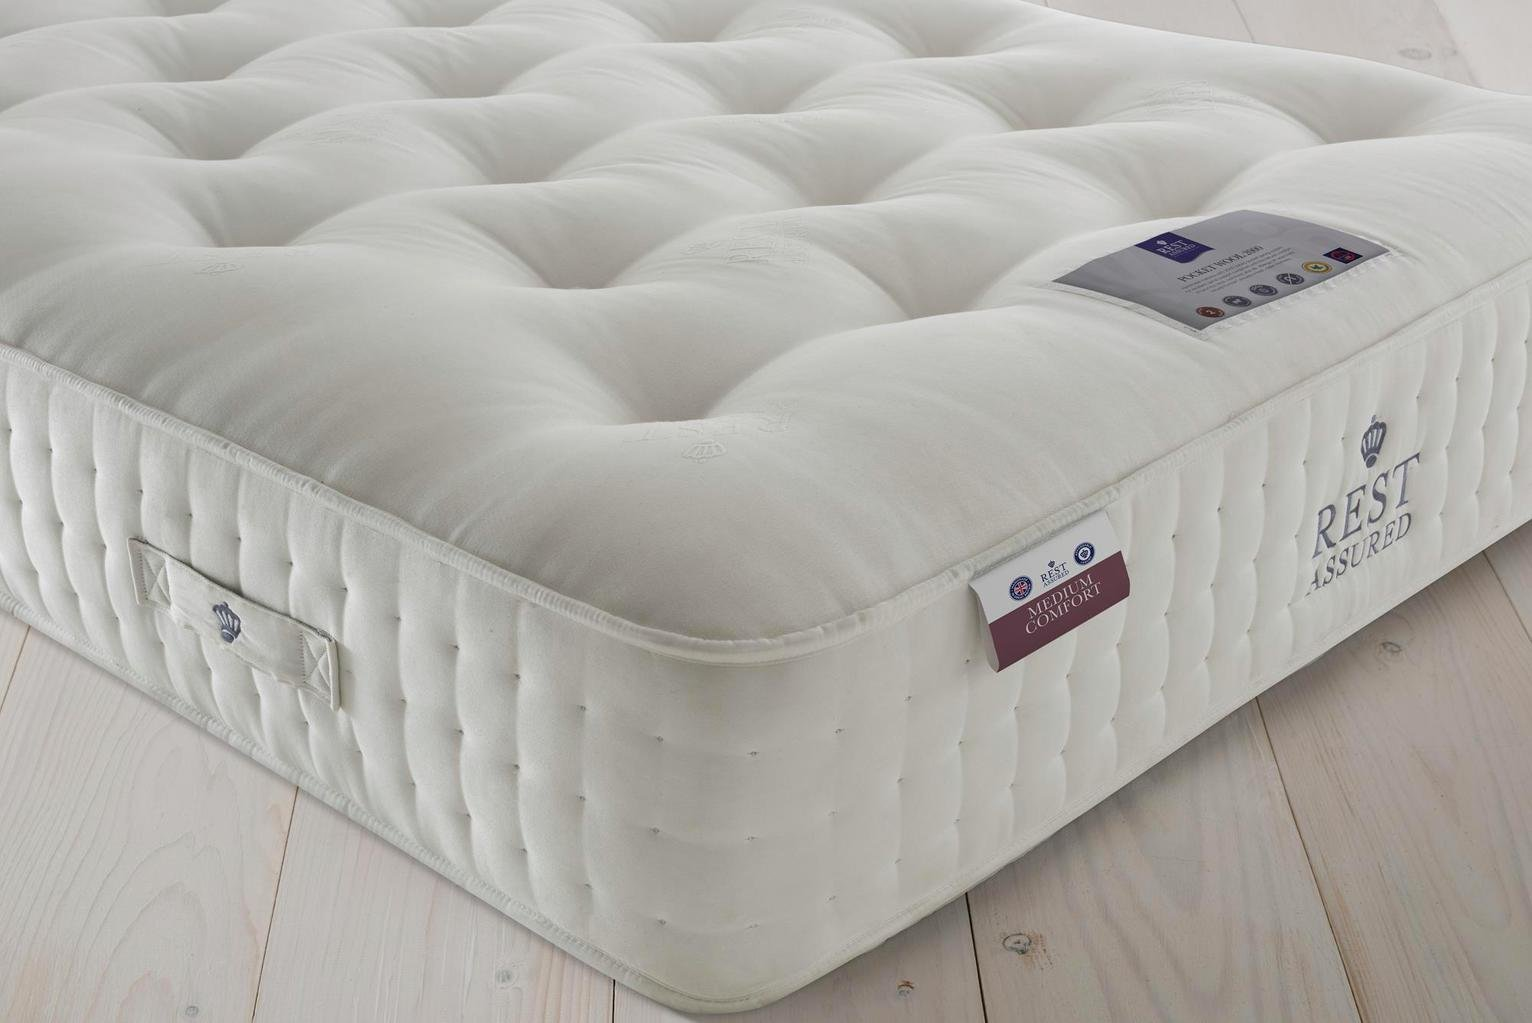 Rest Assured Naturals Pkt Sprung Superking Mattress - Medium